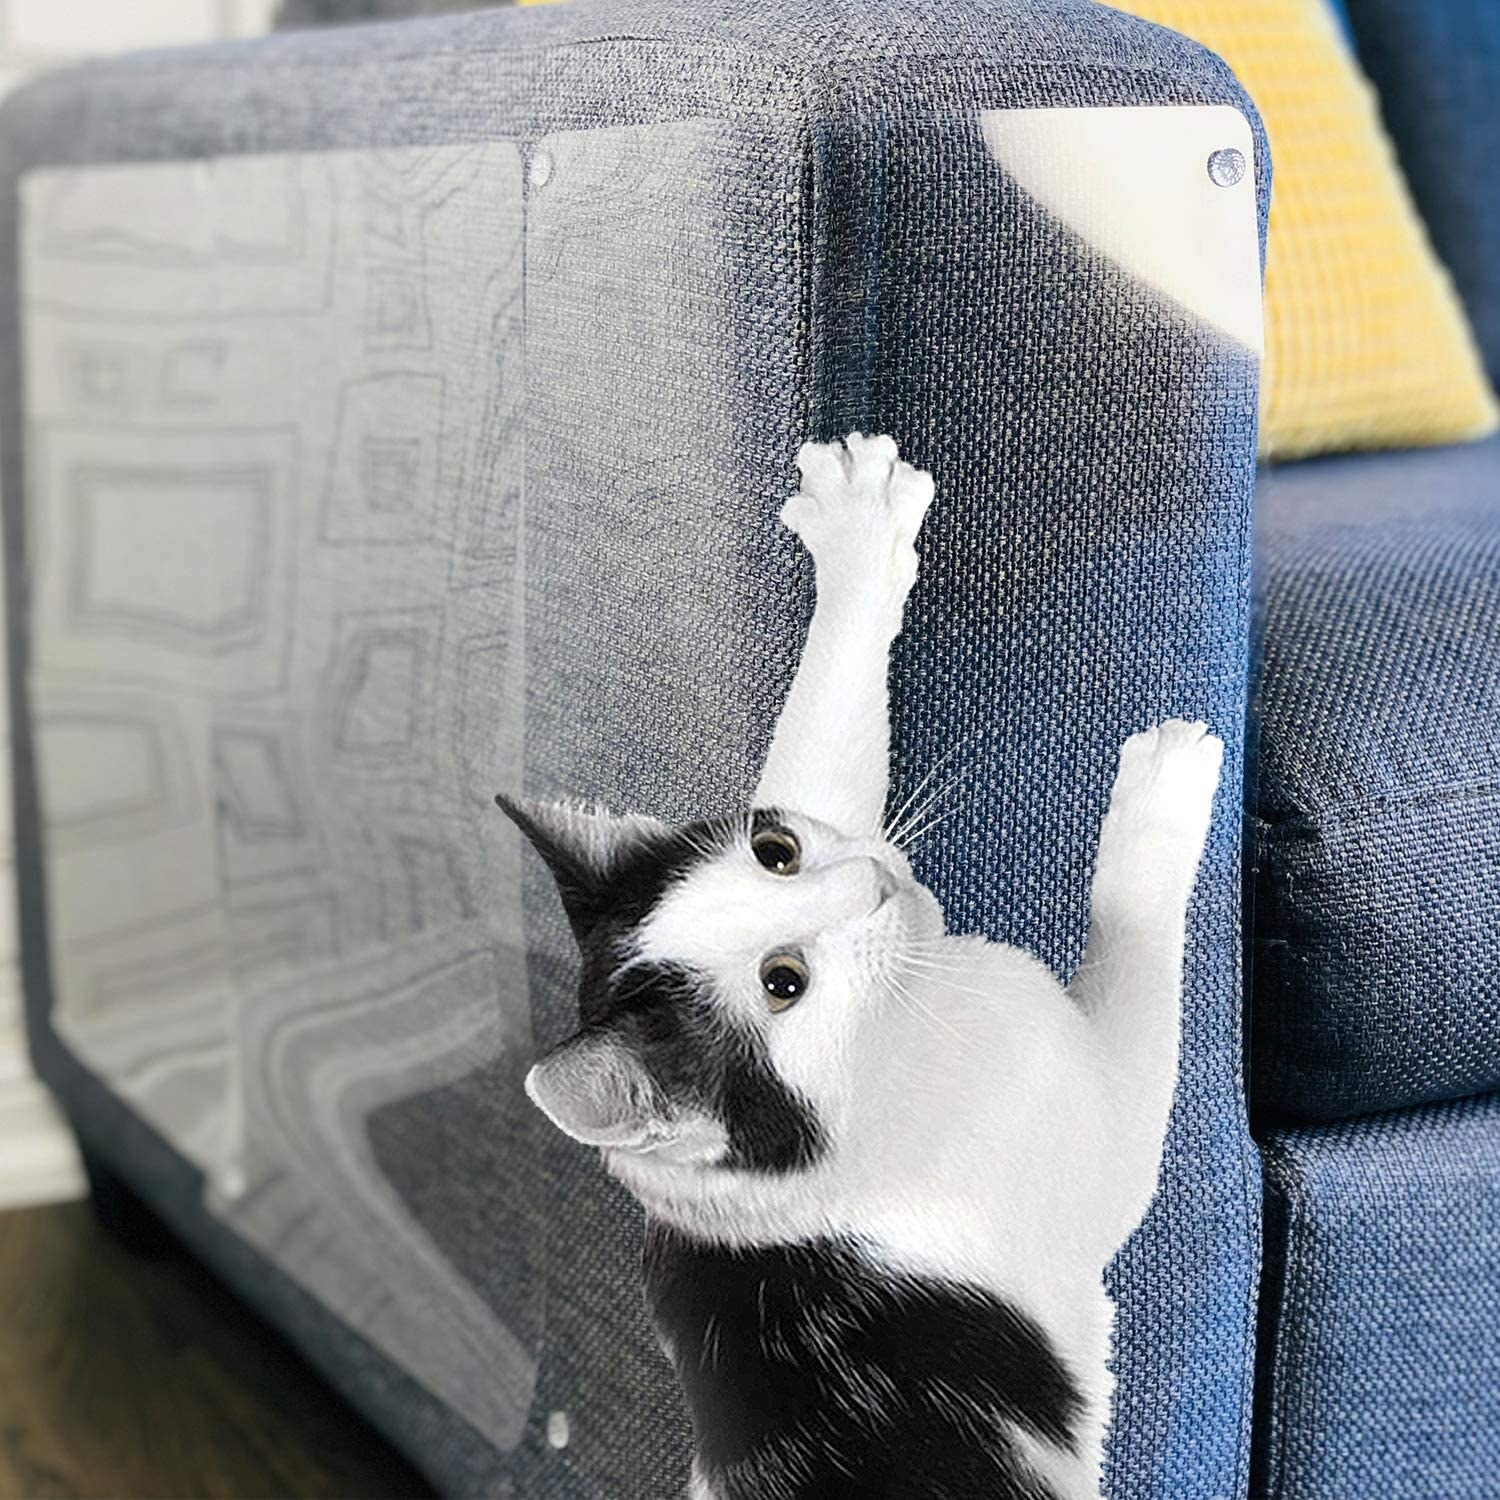 cat scratching the guard on a couch